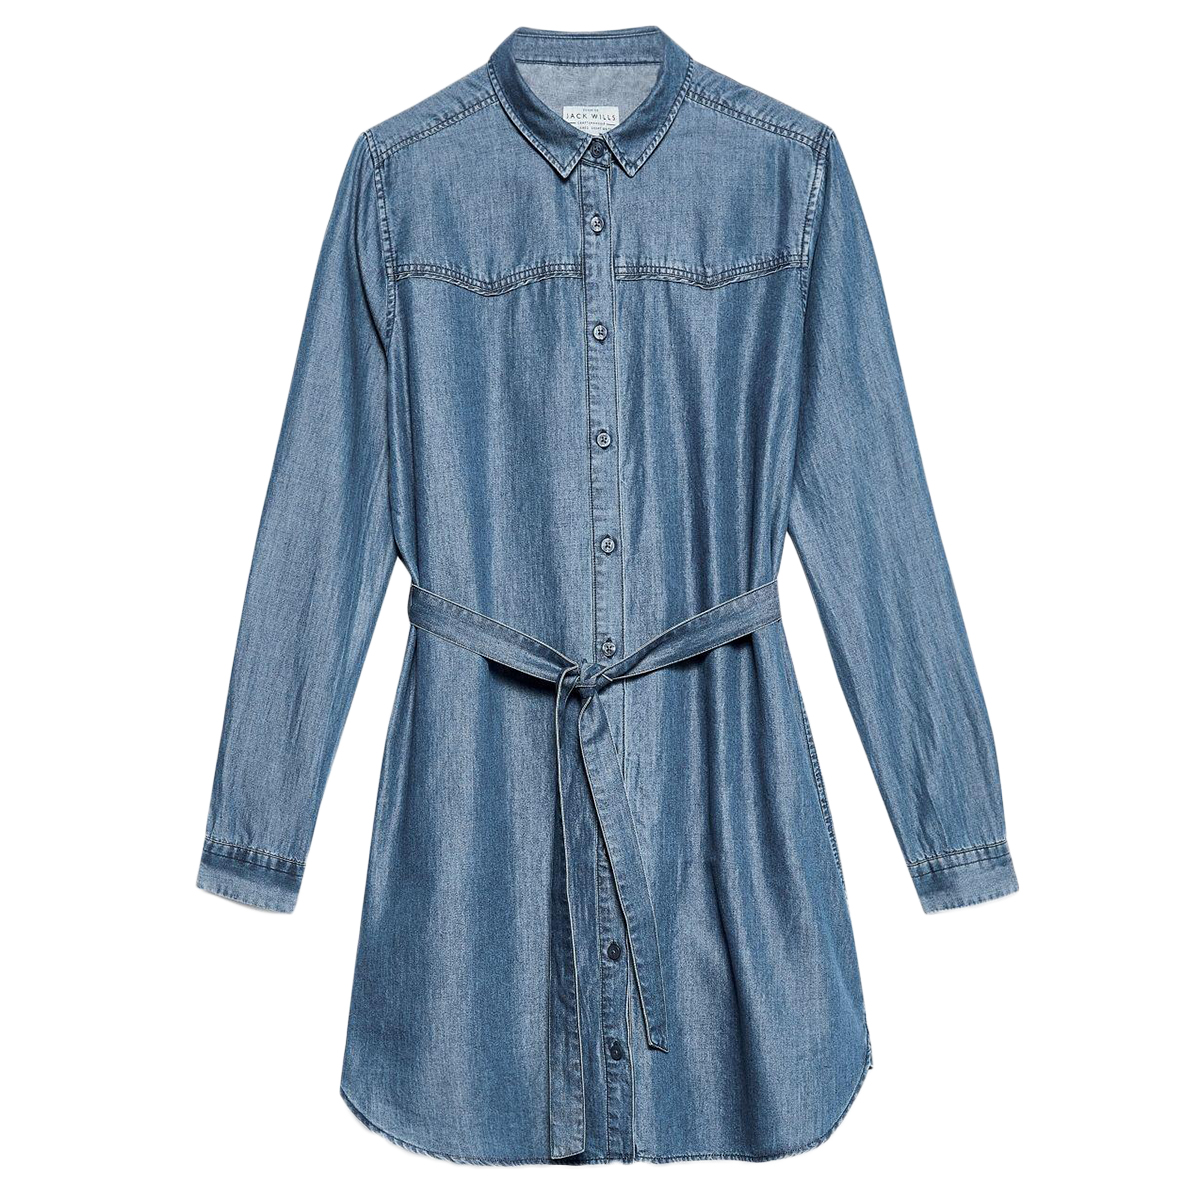 Jack Wills Women's Barnhills Chambray Shirt Dress - Blue, 2